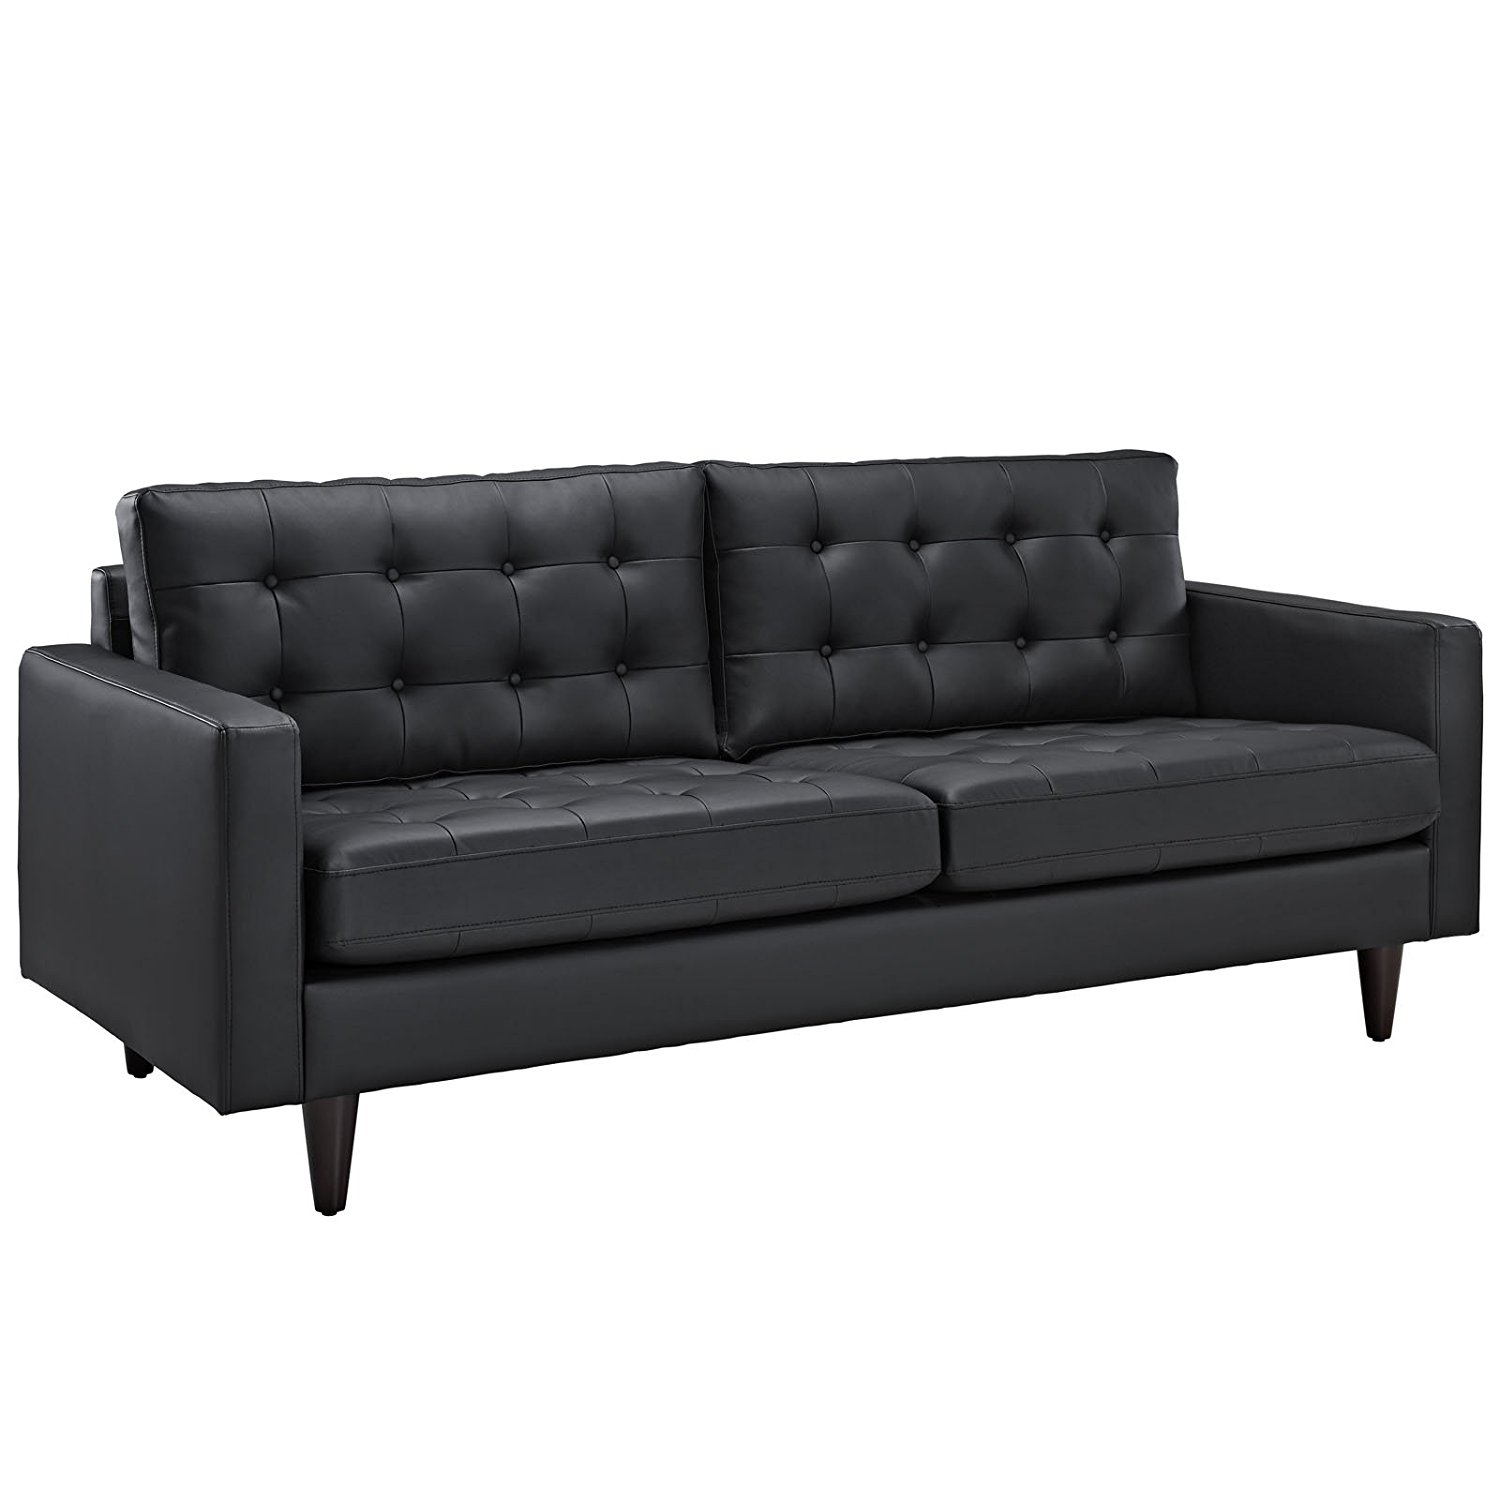 Modway Empress Mid-Century Modern Upholstered Leather Sofa In Black